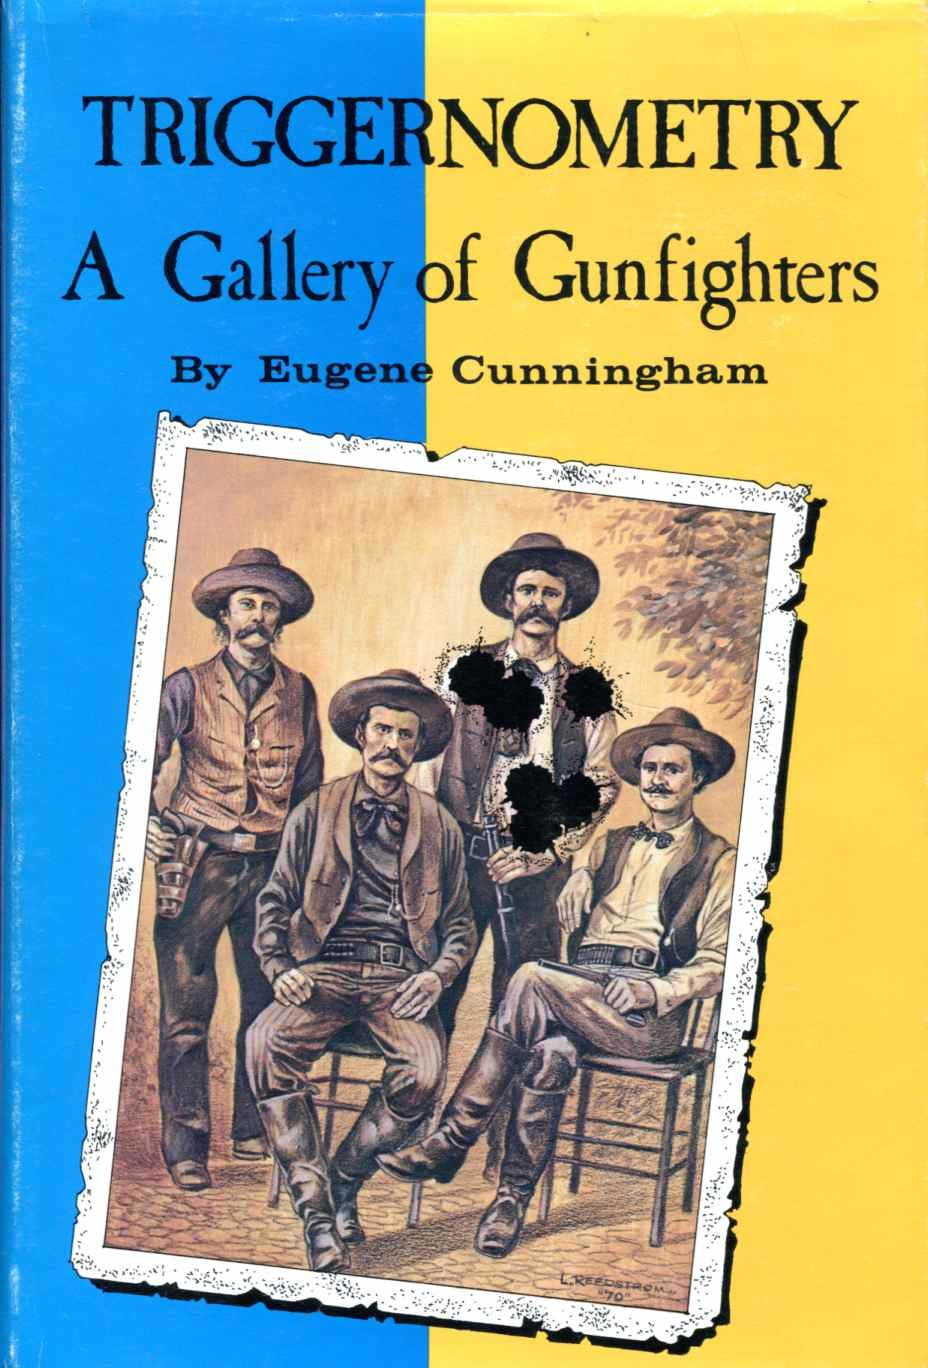 Triggernometry: A Gallery of Gunfighters, Cunningham, Eugene